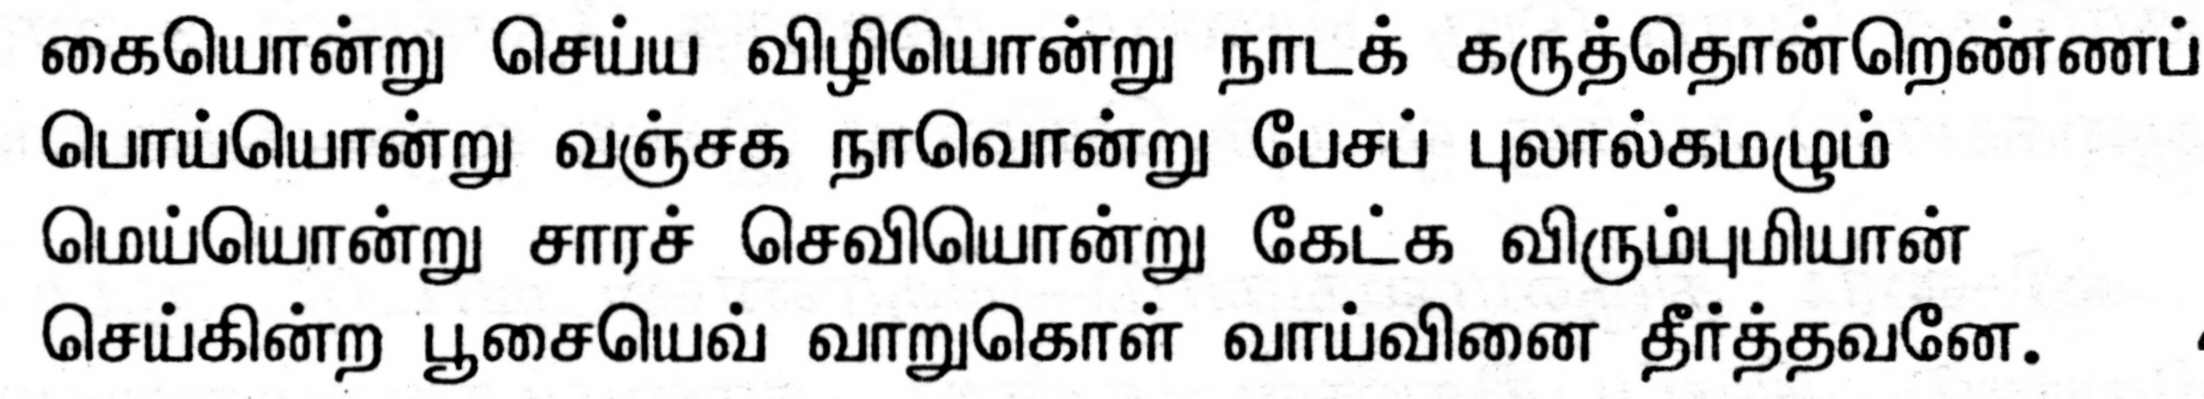 essay on unity in tamil language Unity in diversity is a concept of unity without uniformity and diversity without  fragmentation  the pathan and the tamil are two extreme examples the  others lie  english-language indian children's literature: representations of  nation,.